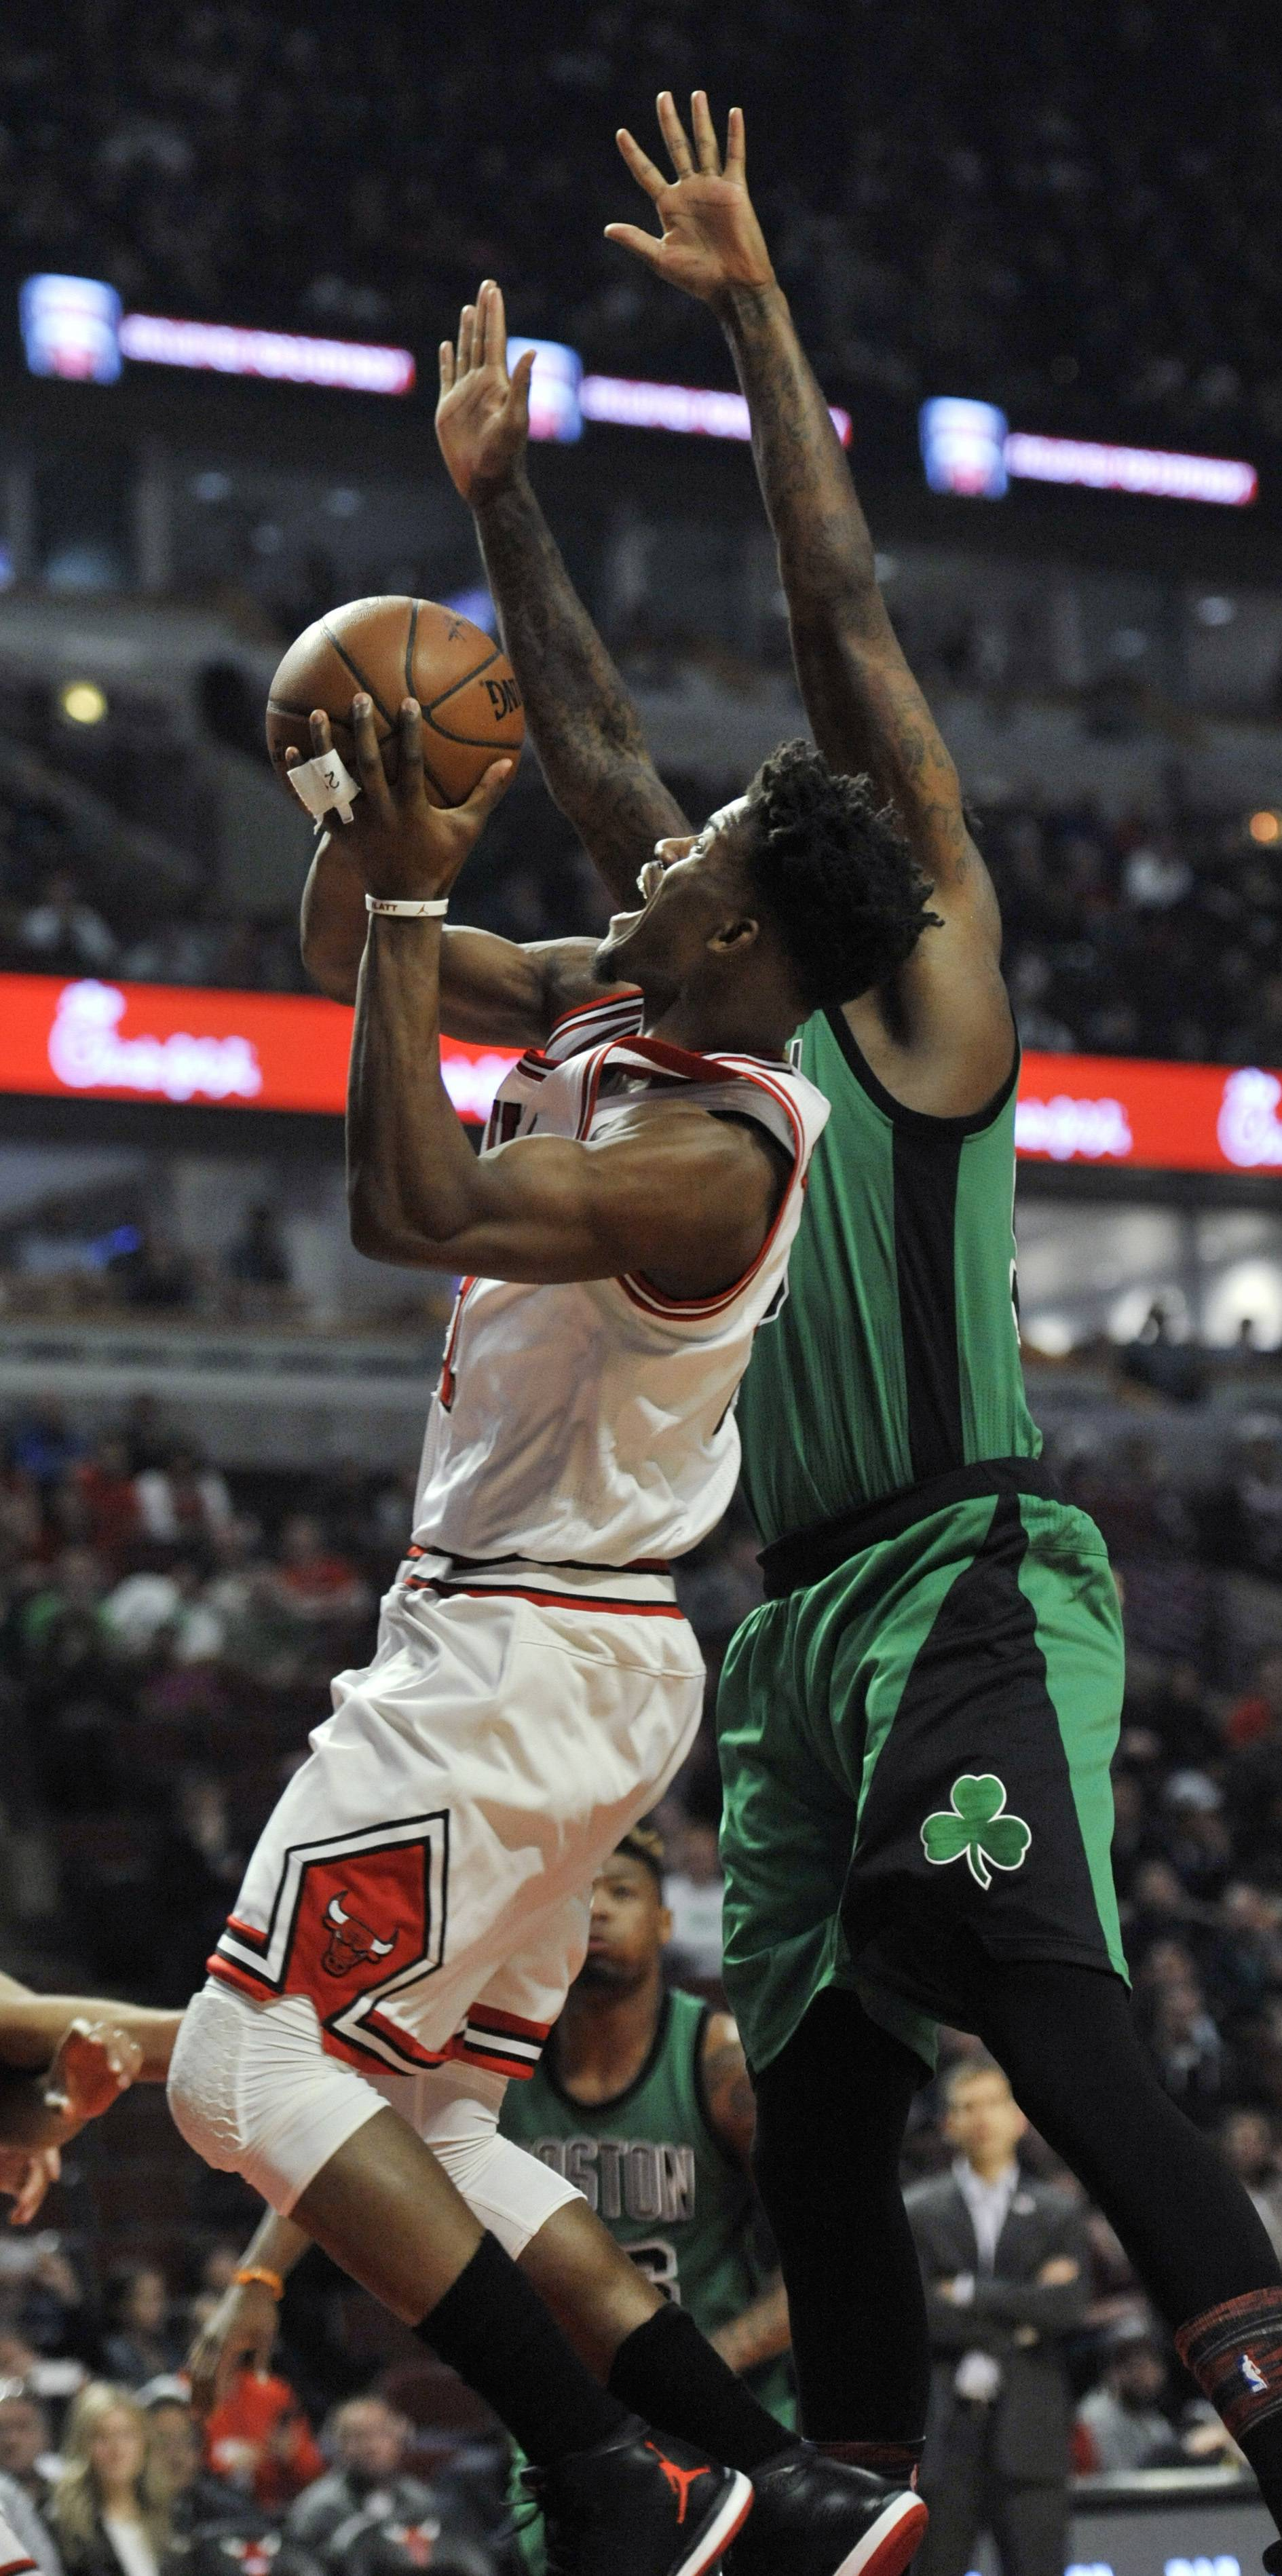 Will the Boston Celtics make a run at trading for Bulls guard Jimmy Butler? The NBA trade deadline is Thursday.